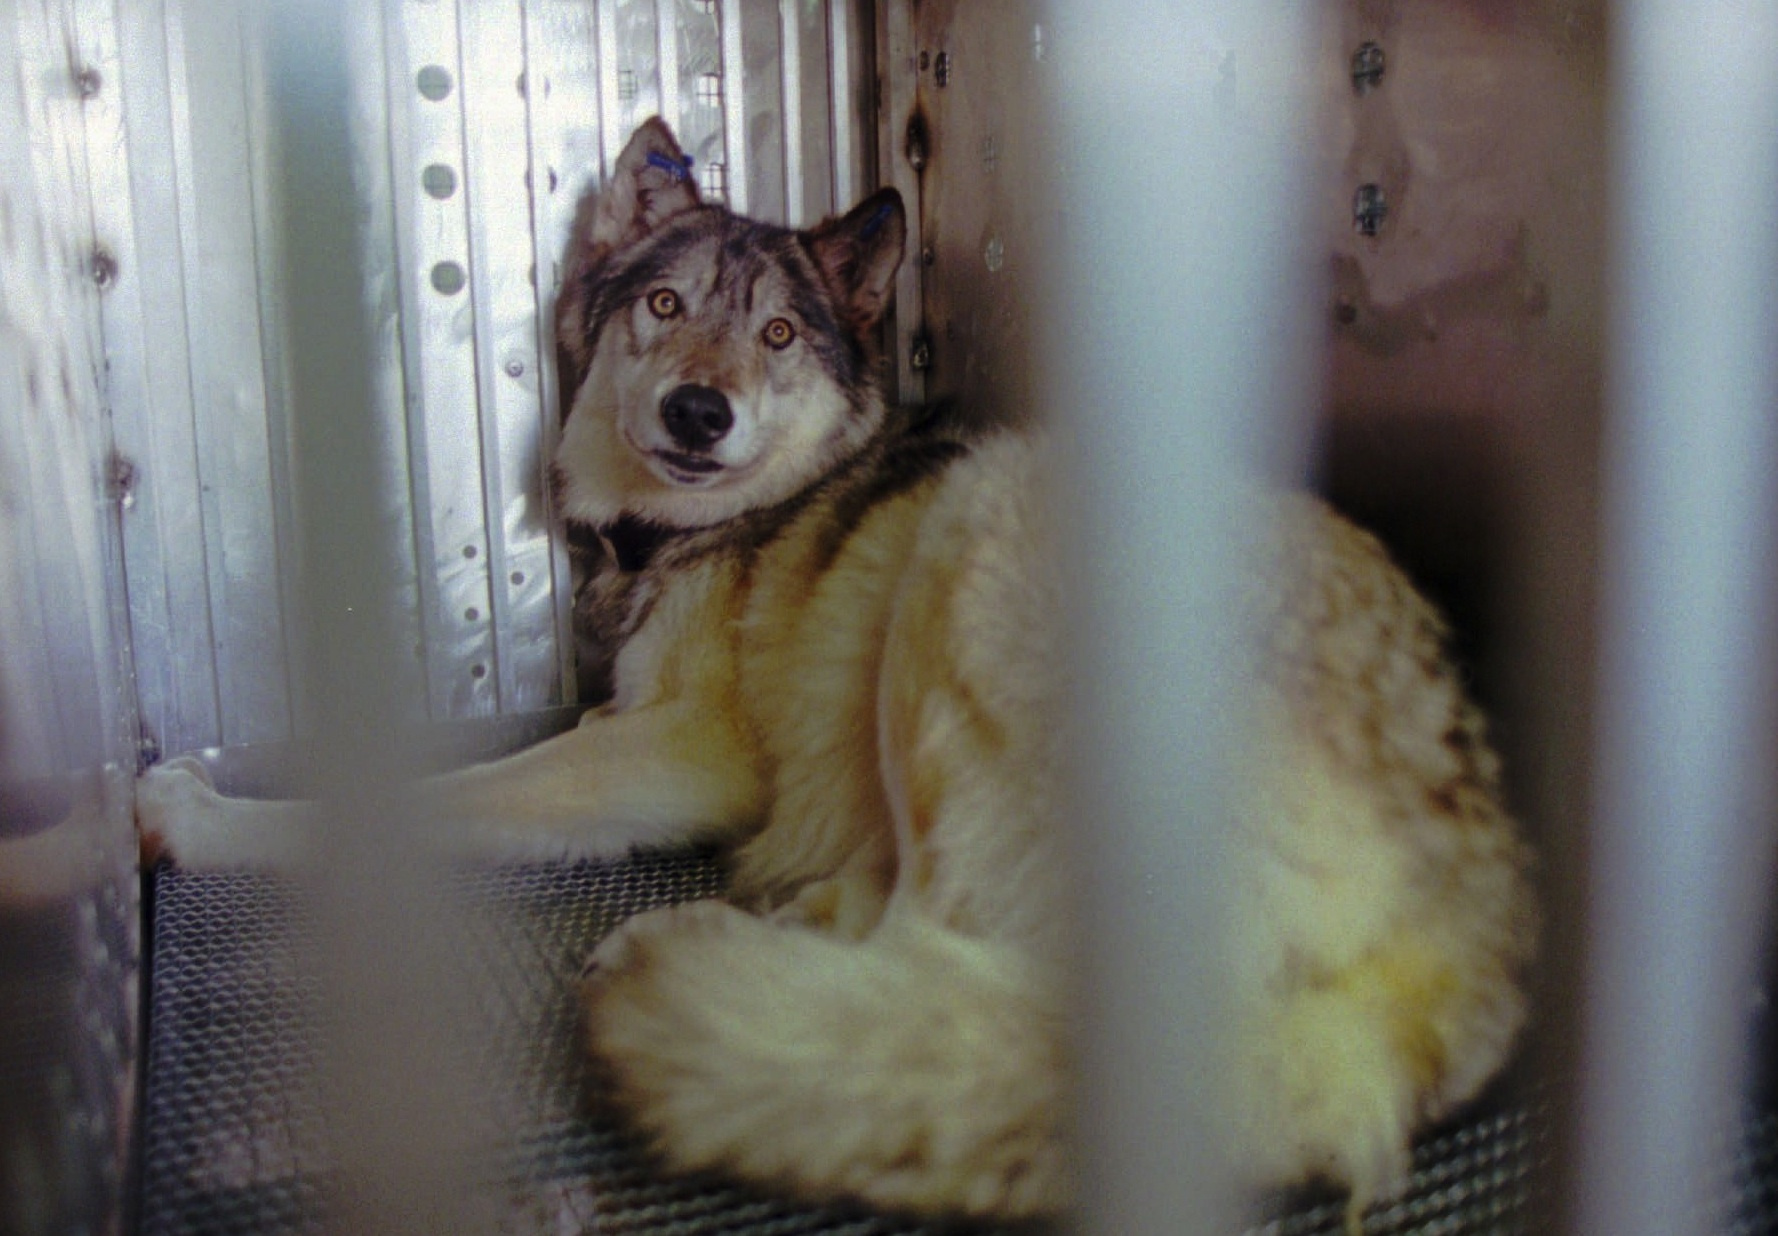 Wolves at the Door: Examining if the fight to save wolves put other animals at risk